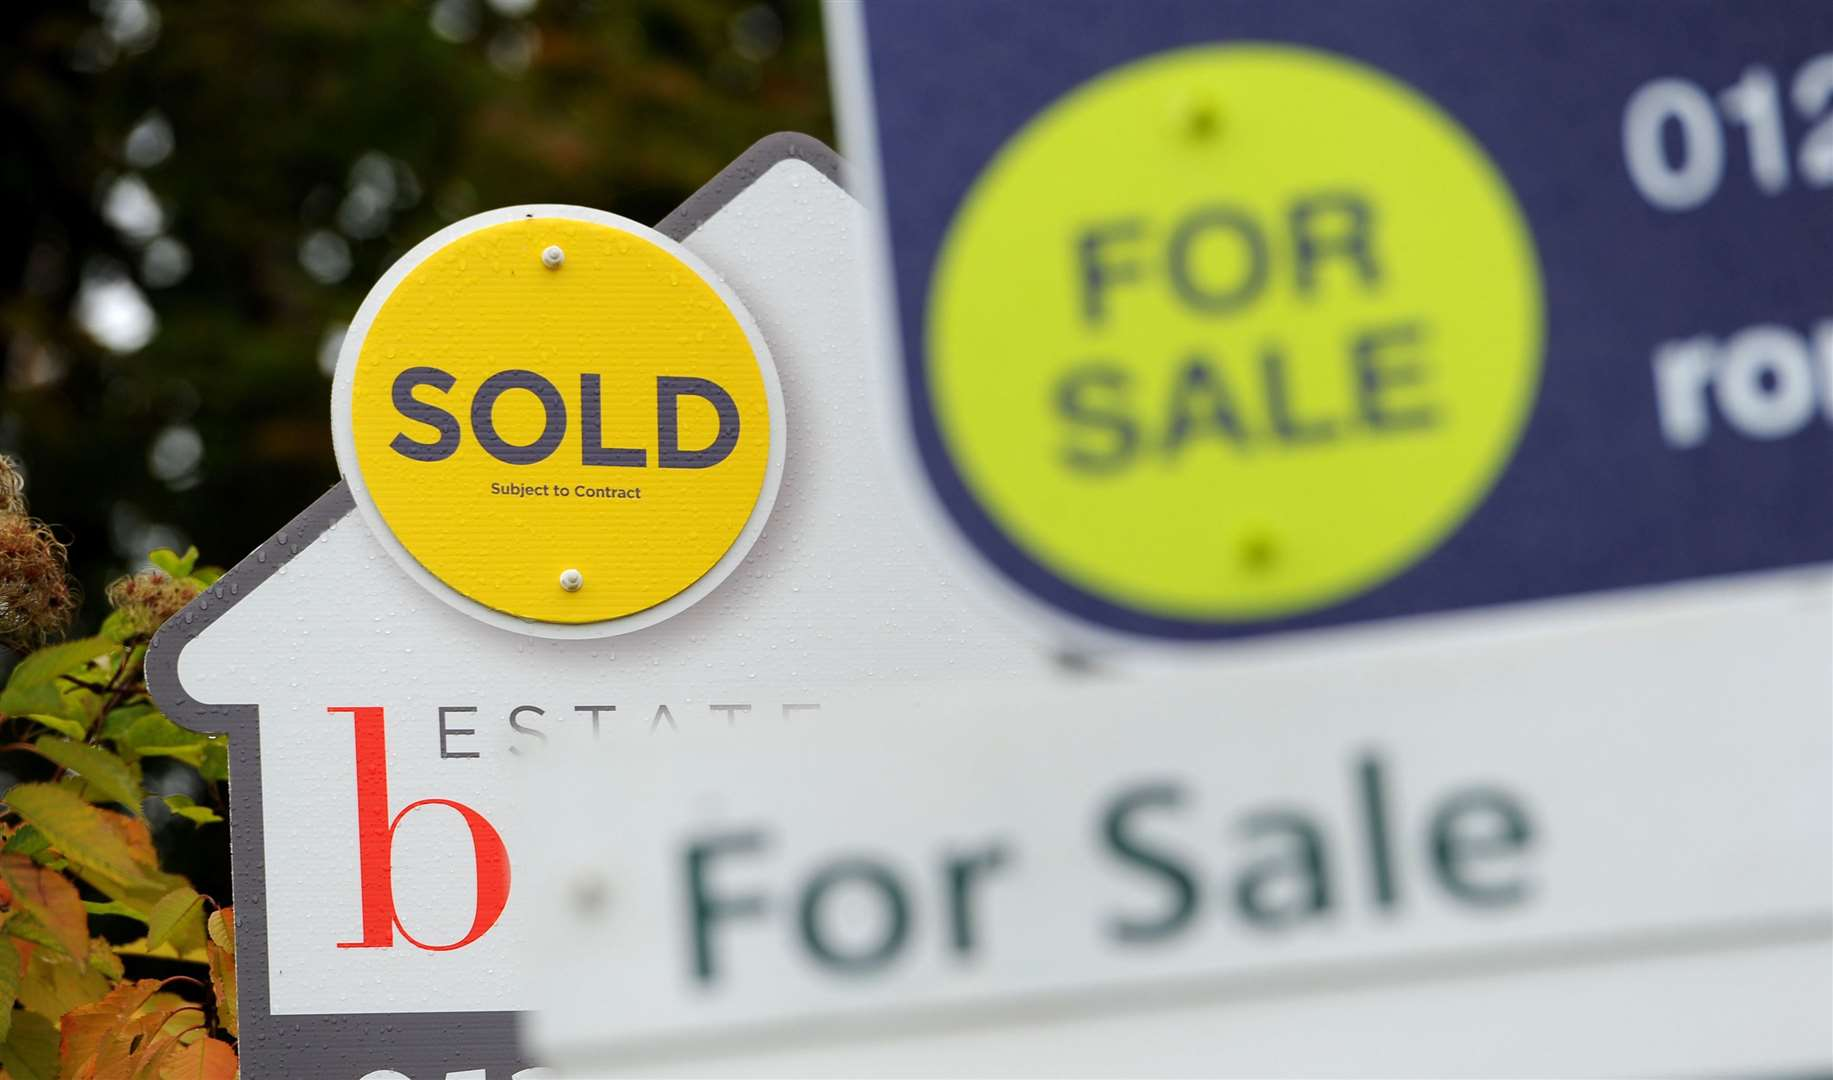 Zoopla says buyers should take advantage of the extended stamp duty holiday